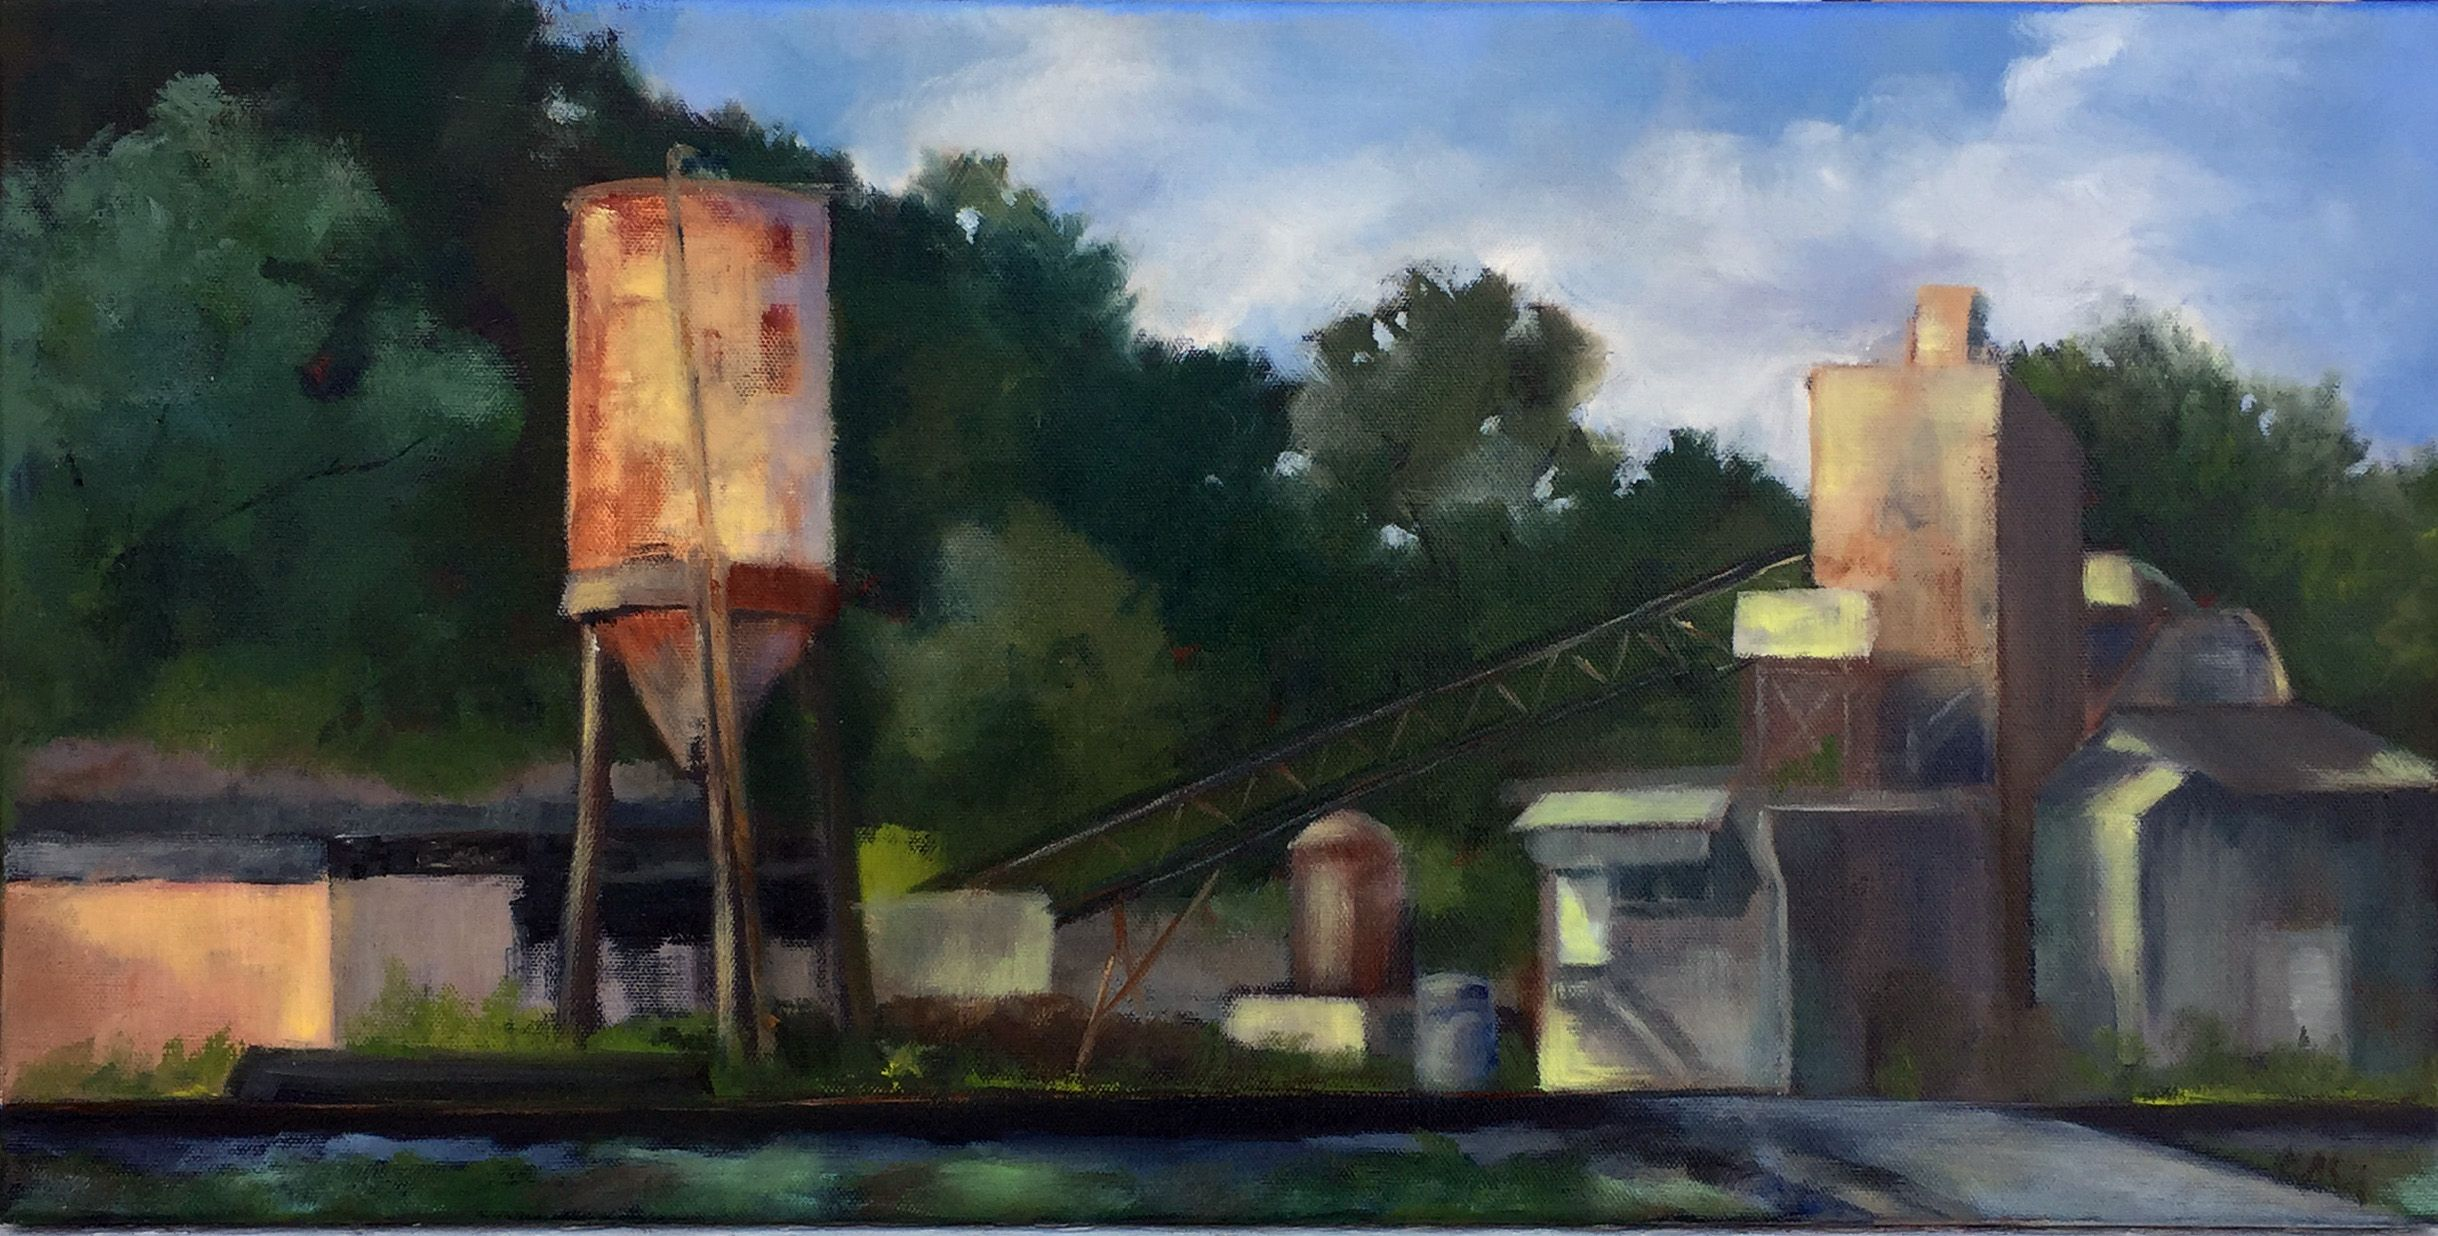 the cement plant painted during the golden hills plein air paint